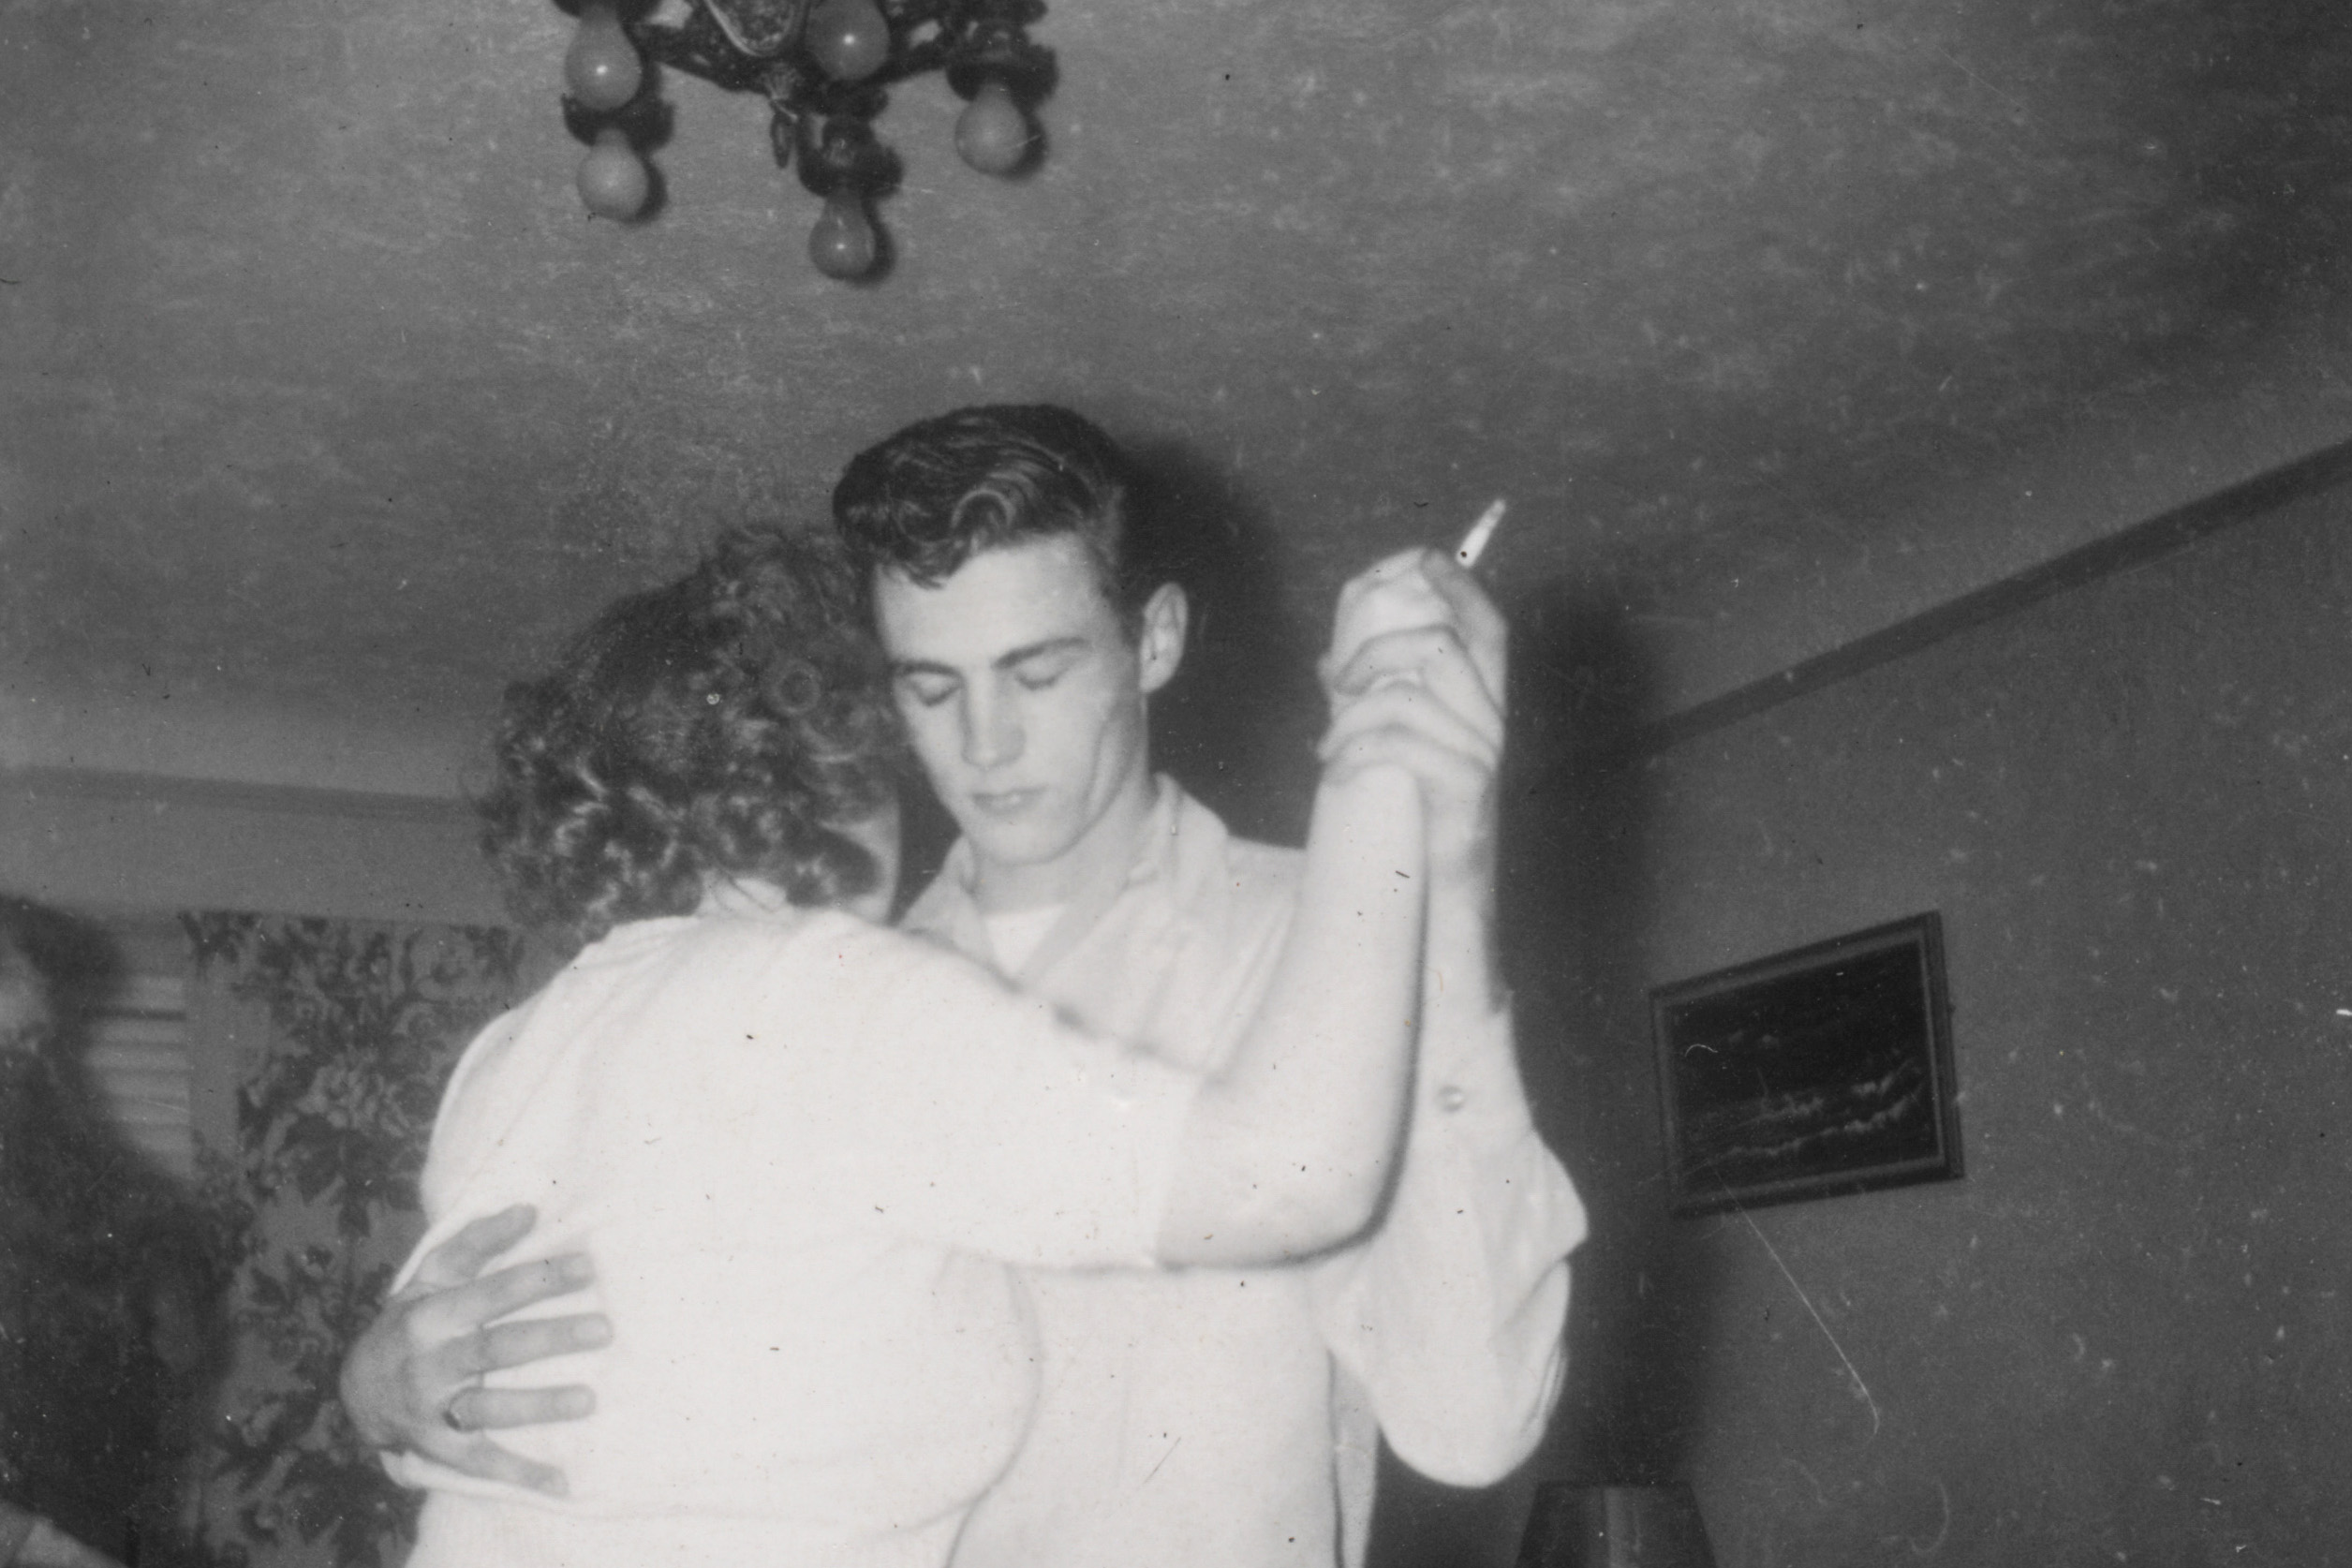 A vintage black-and-white photo of two people dancing. The man has a fifties hairstyle, and has his eyes closed. The person he is dancing with has curled hair, and is holding a cigarette between their clasped hands.